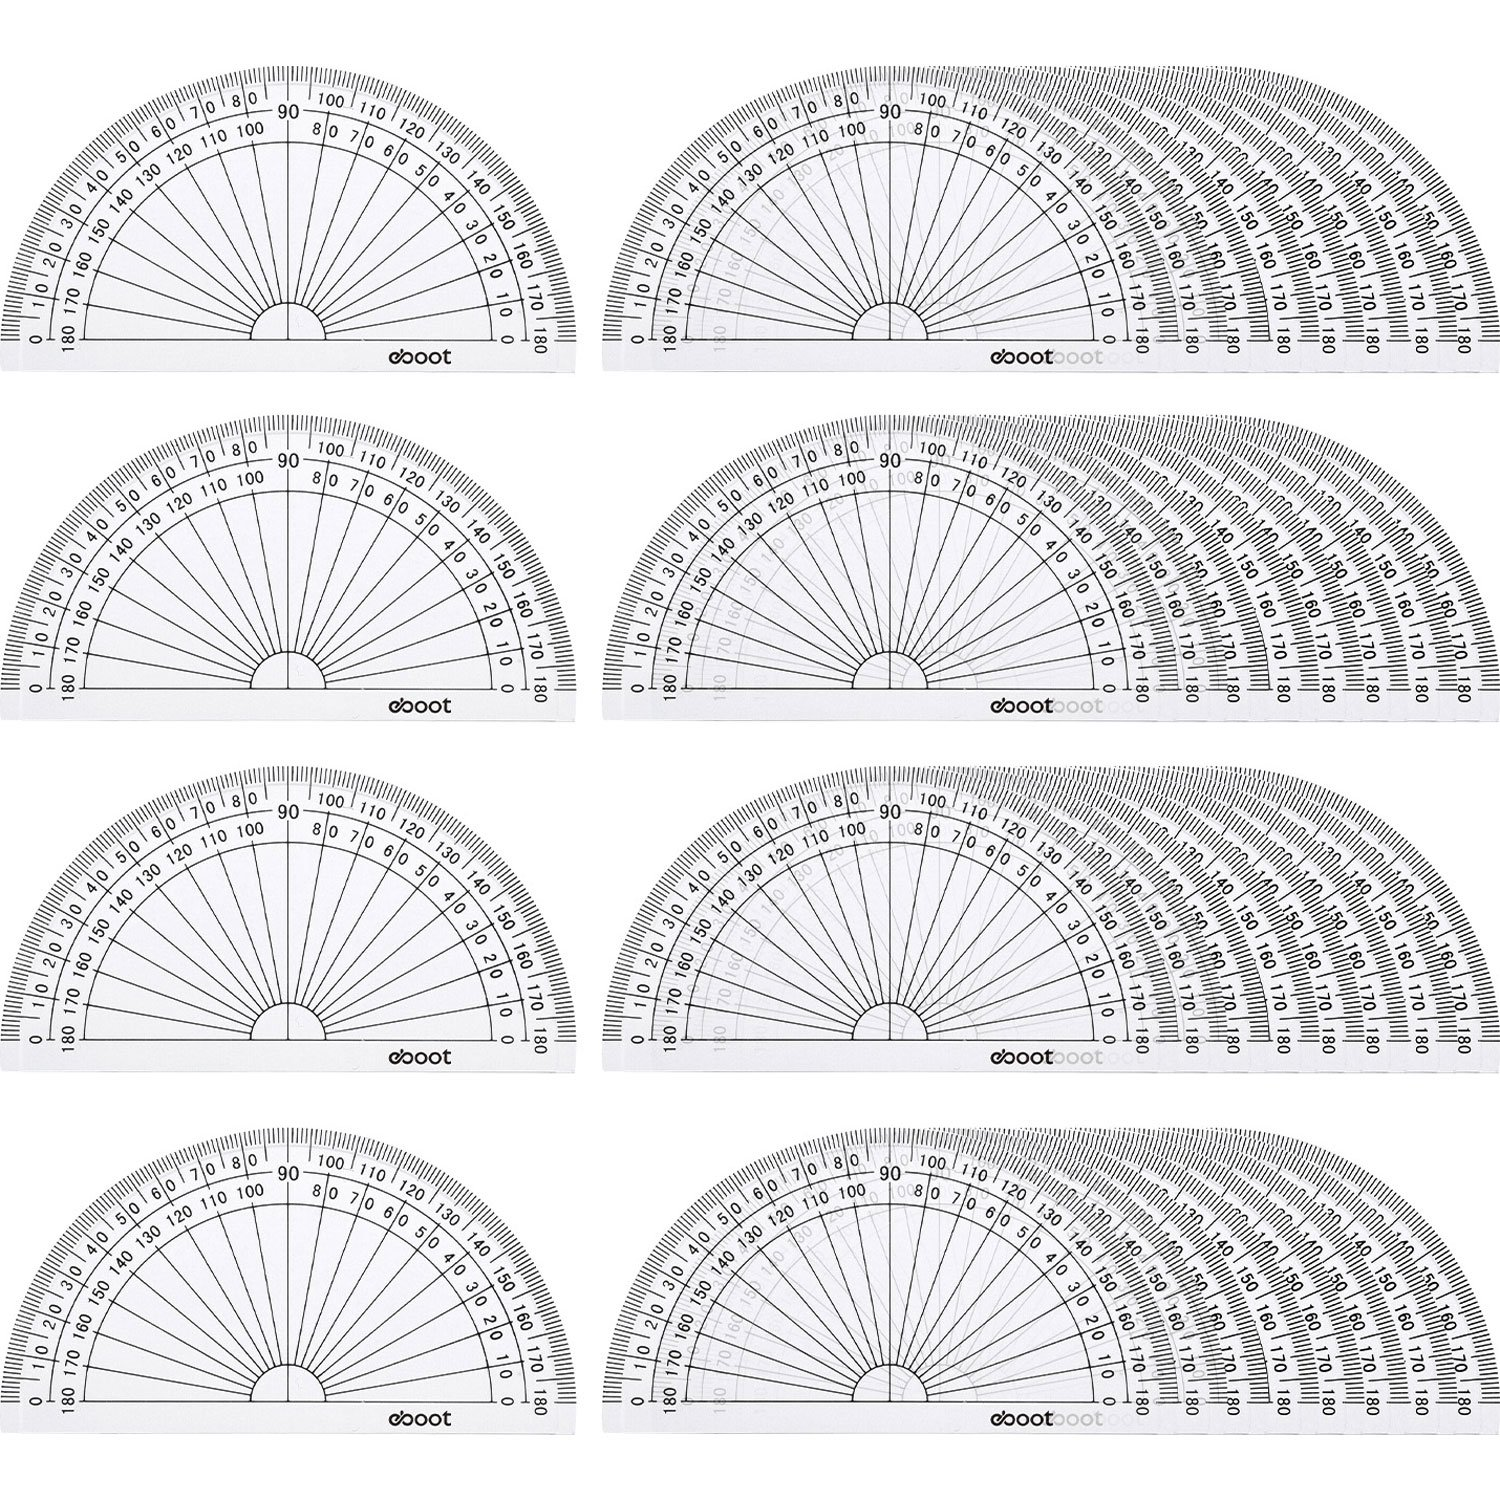 eBoot 36 Pack Plastic Protractor Math Protractors 180 Degrees Protractors for Angle Measurement Student School Office Supply, 4 Inches, Clear by eBoot